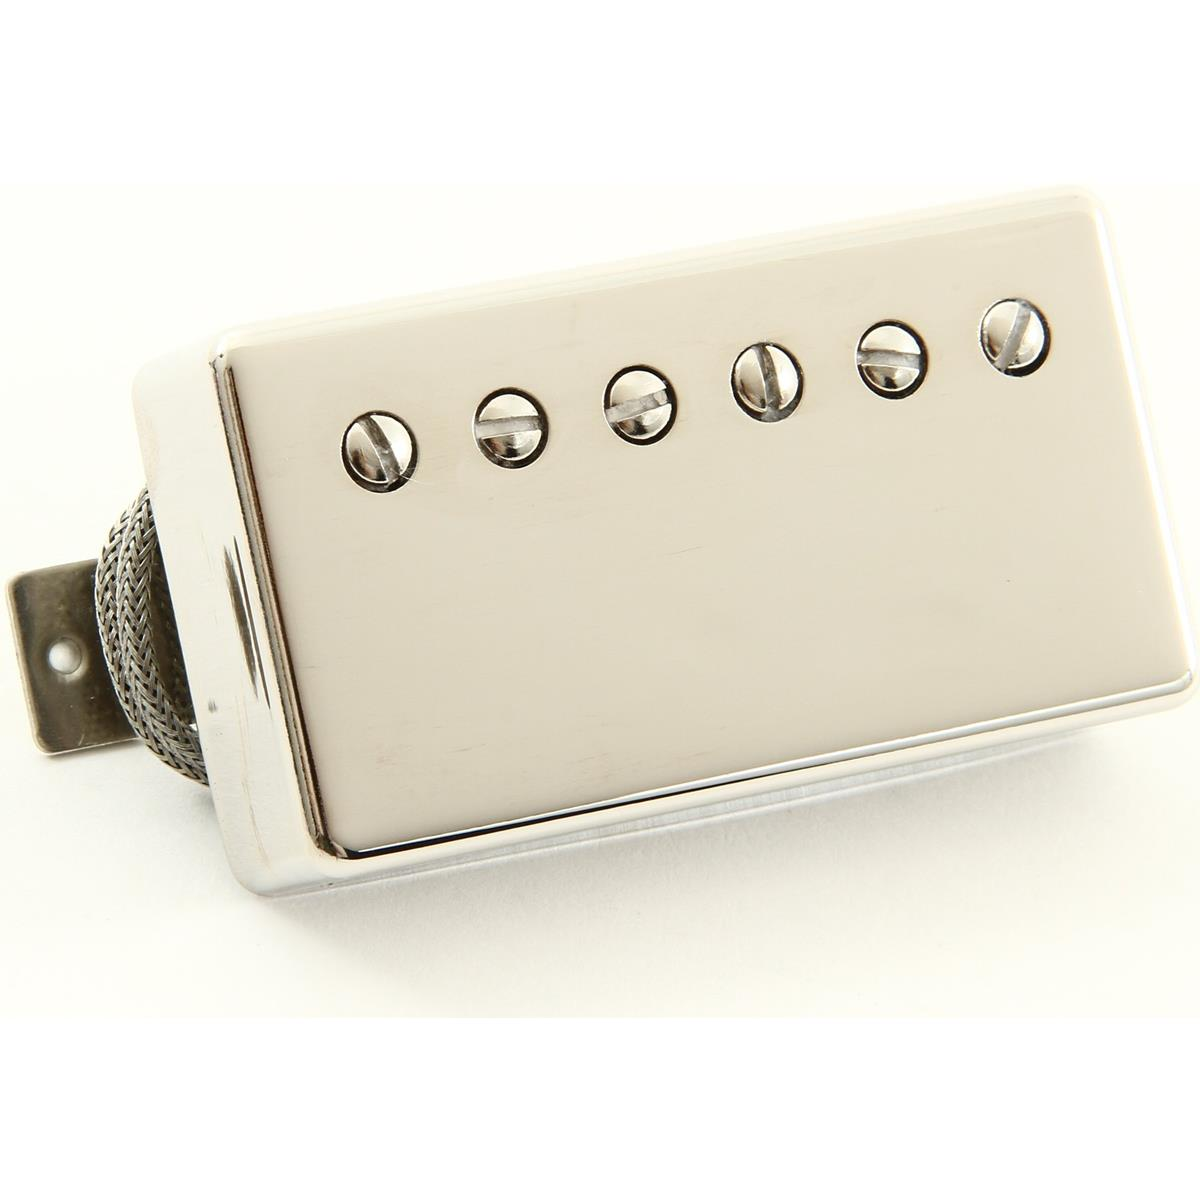 SEYMOUR-DUNCAN SH 1 B NC 59  MODEL NICKEL CLASSIC COVER BRIDGE 11101 05